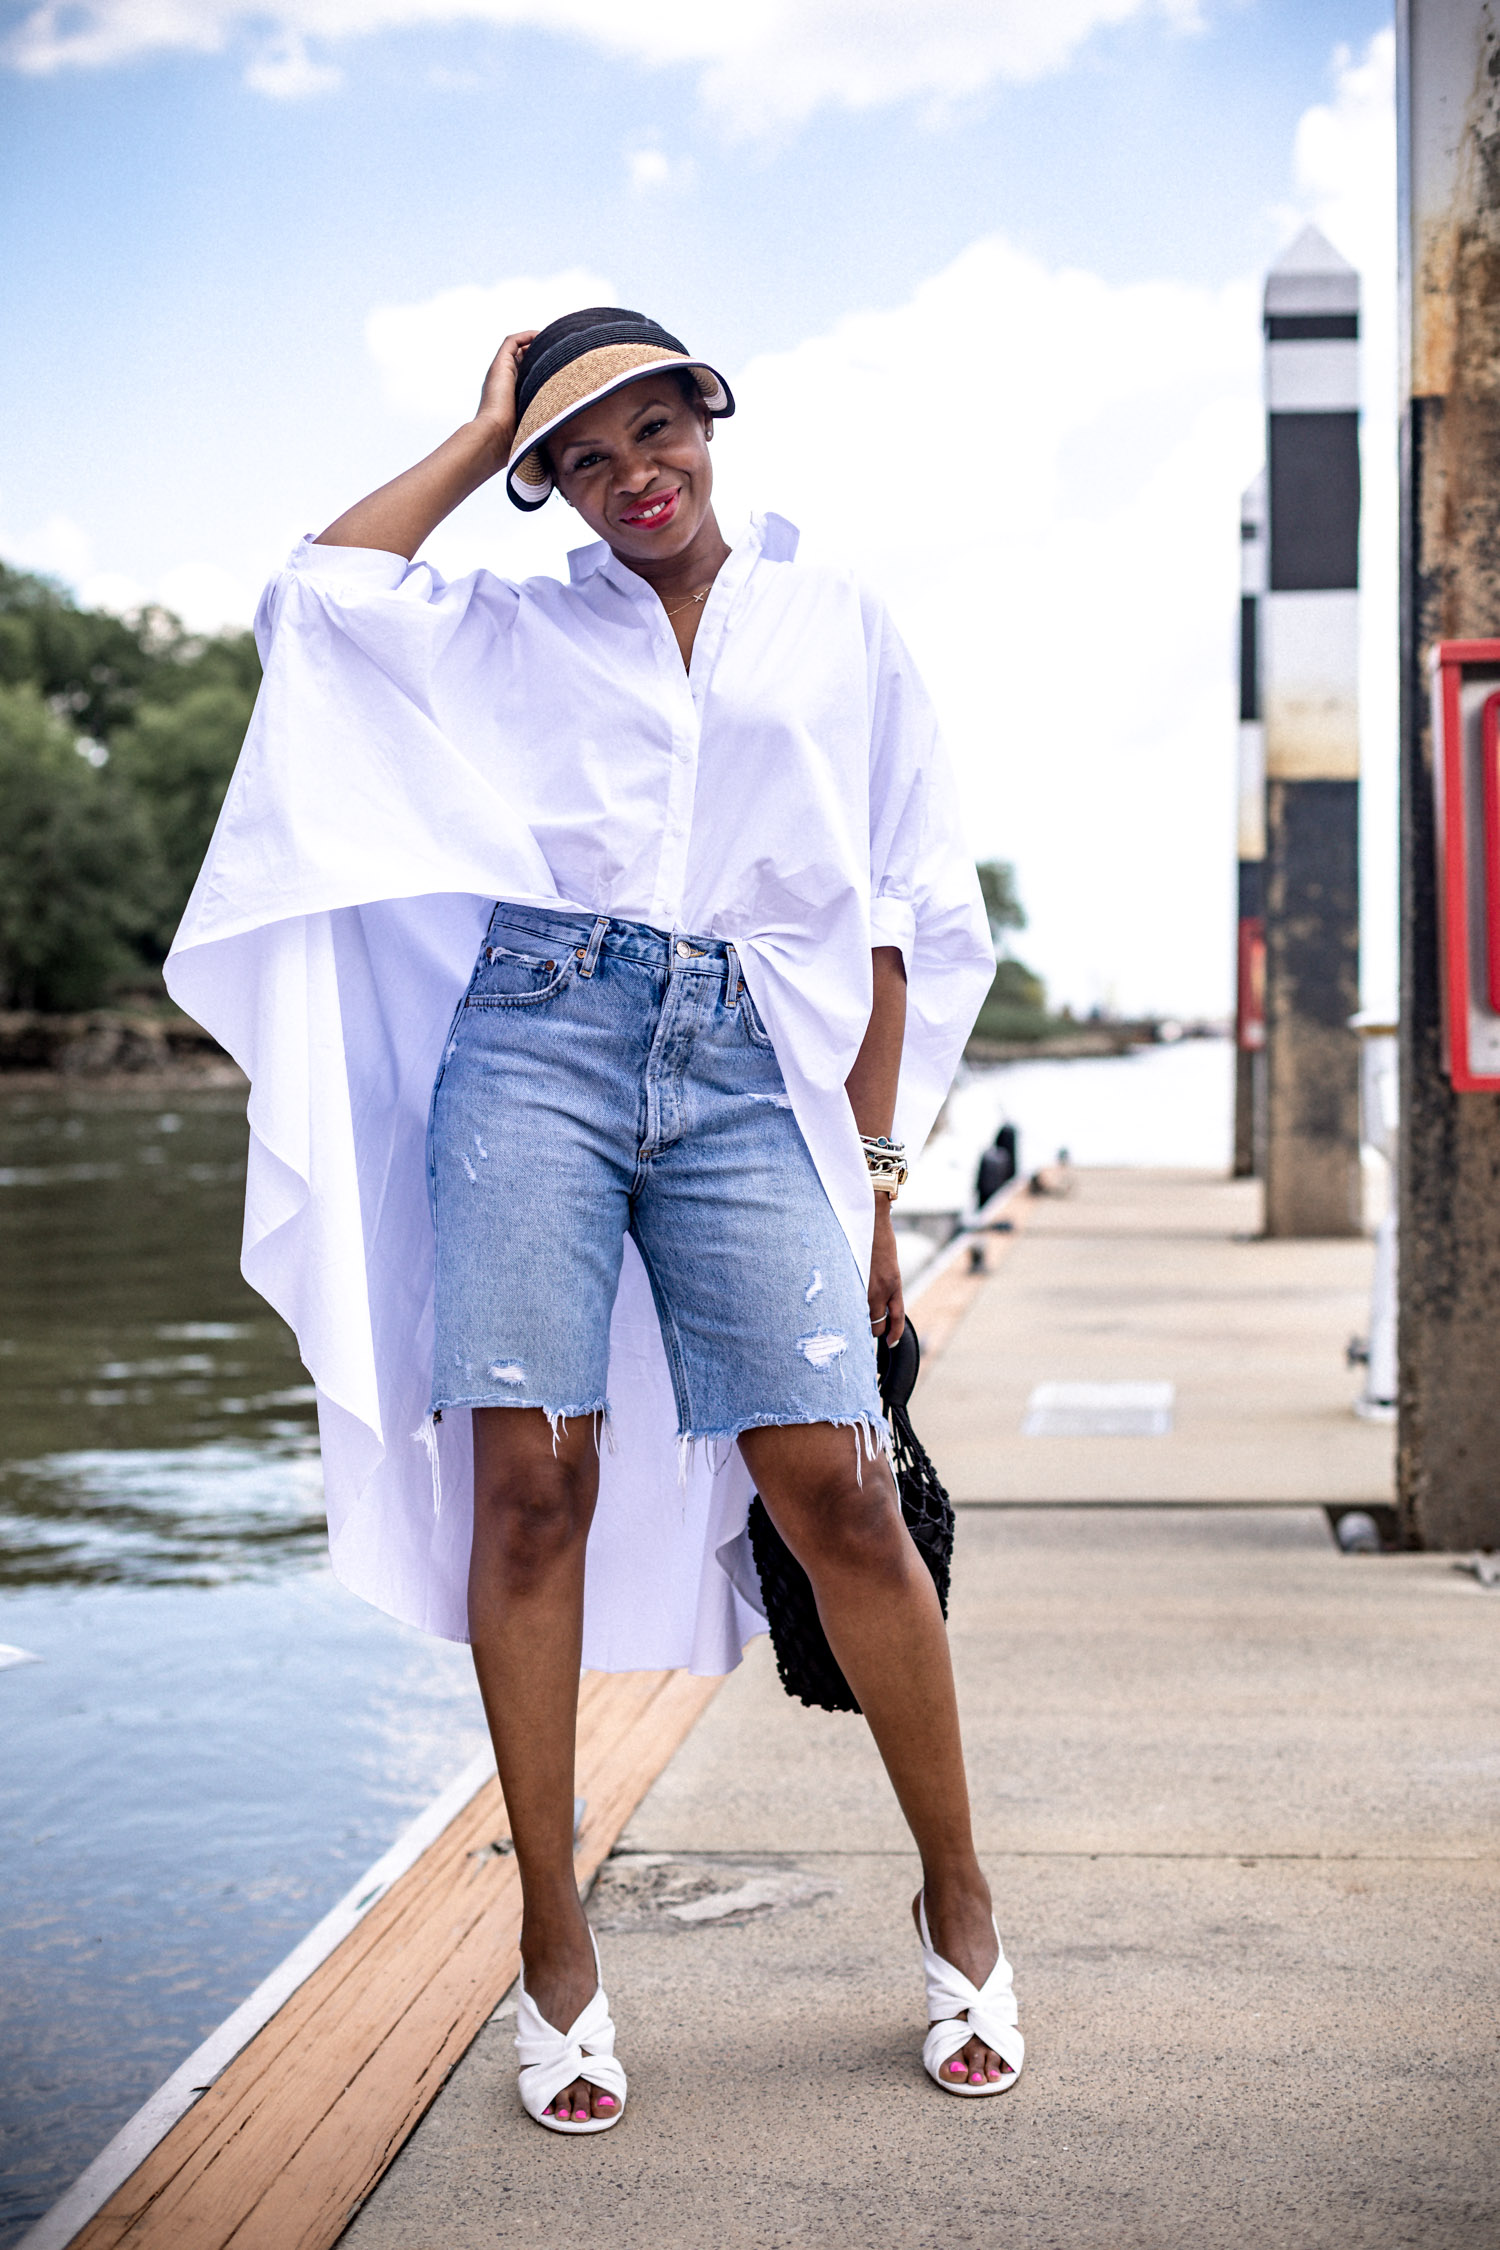 Atlanta Blogger Monica Awe Etuk Wearing White High Low Shirt White Sandals Visor From Nordstrom Rack And Staud Bag And High Waist Bermuda Shorts 5 Awed By Monica